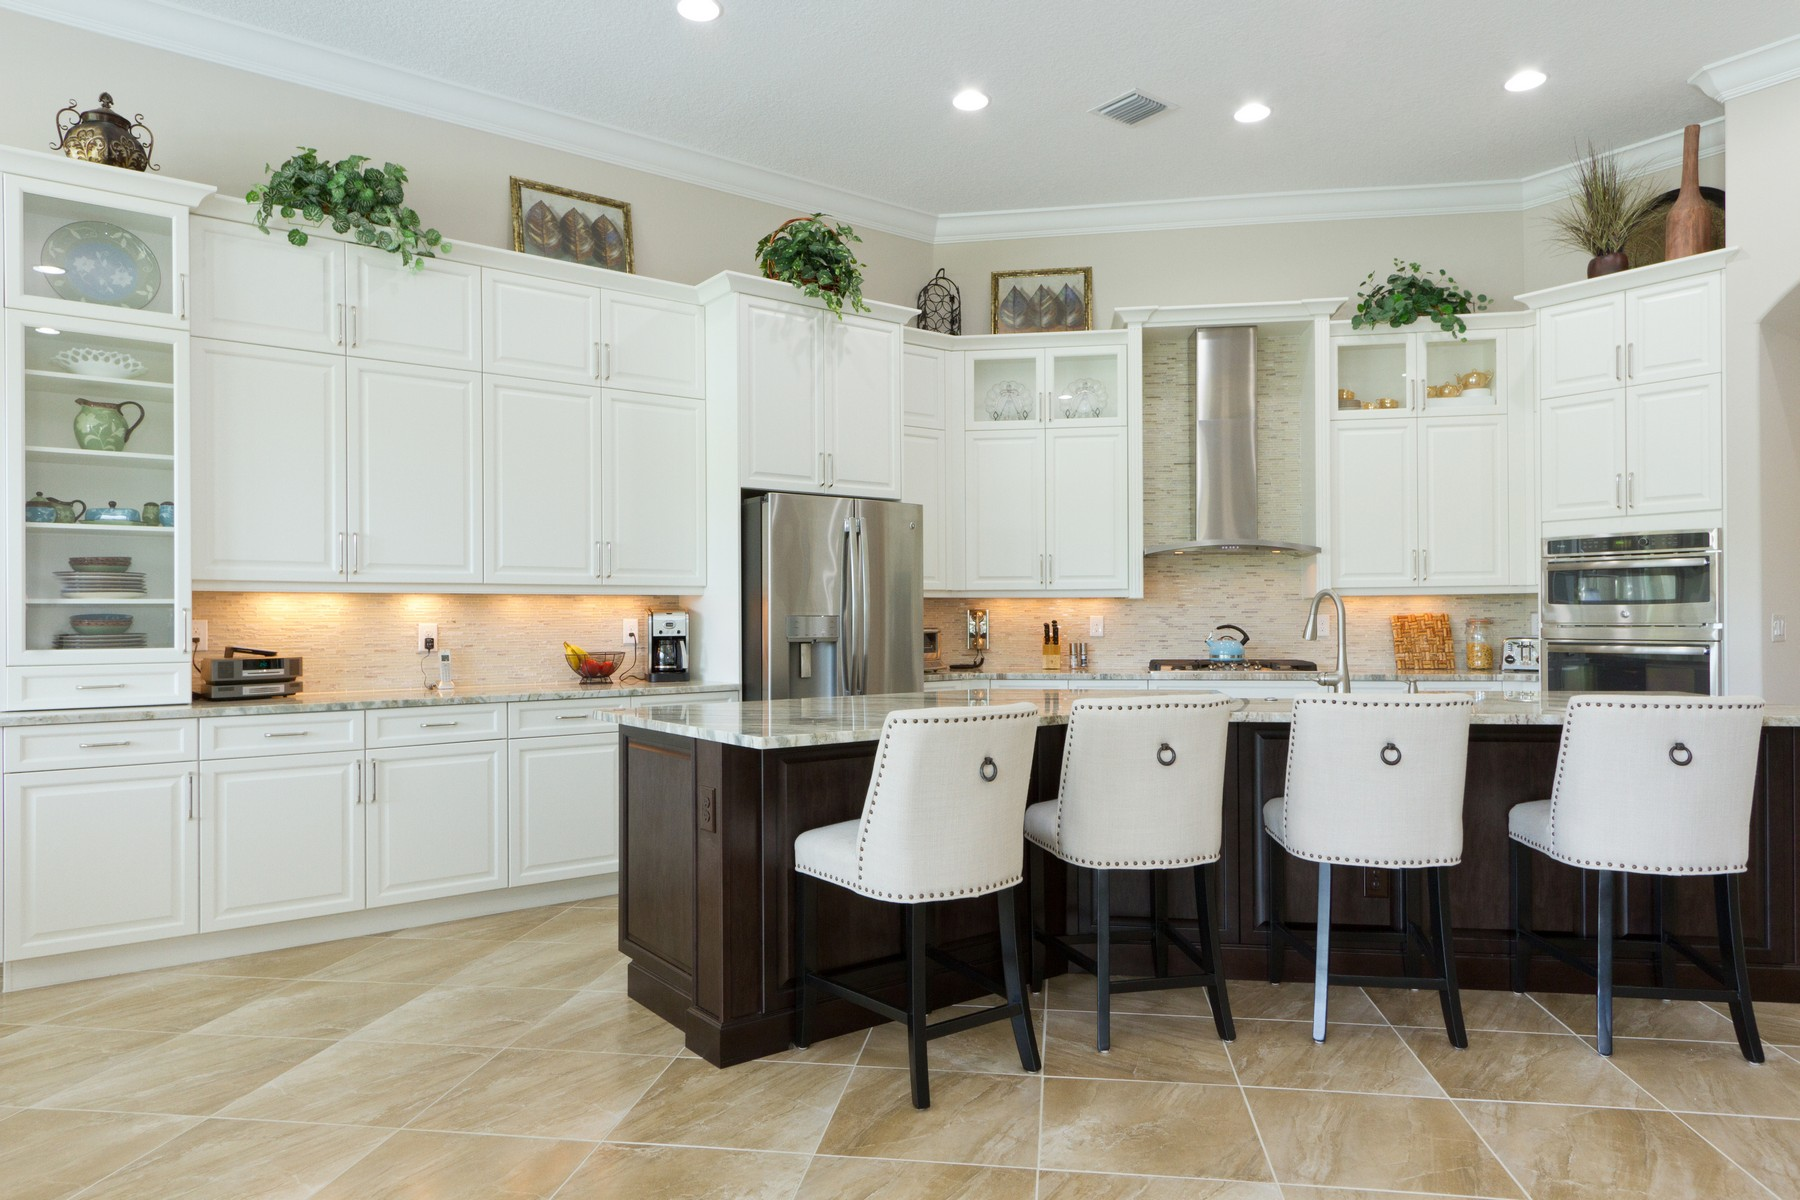 Property for Sale at Enjoy Easterly Morning Sunshine and Afternoon BBQ's! 450 Sapphire Way SW Vero Beach, Florida 32968 United States